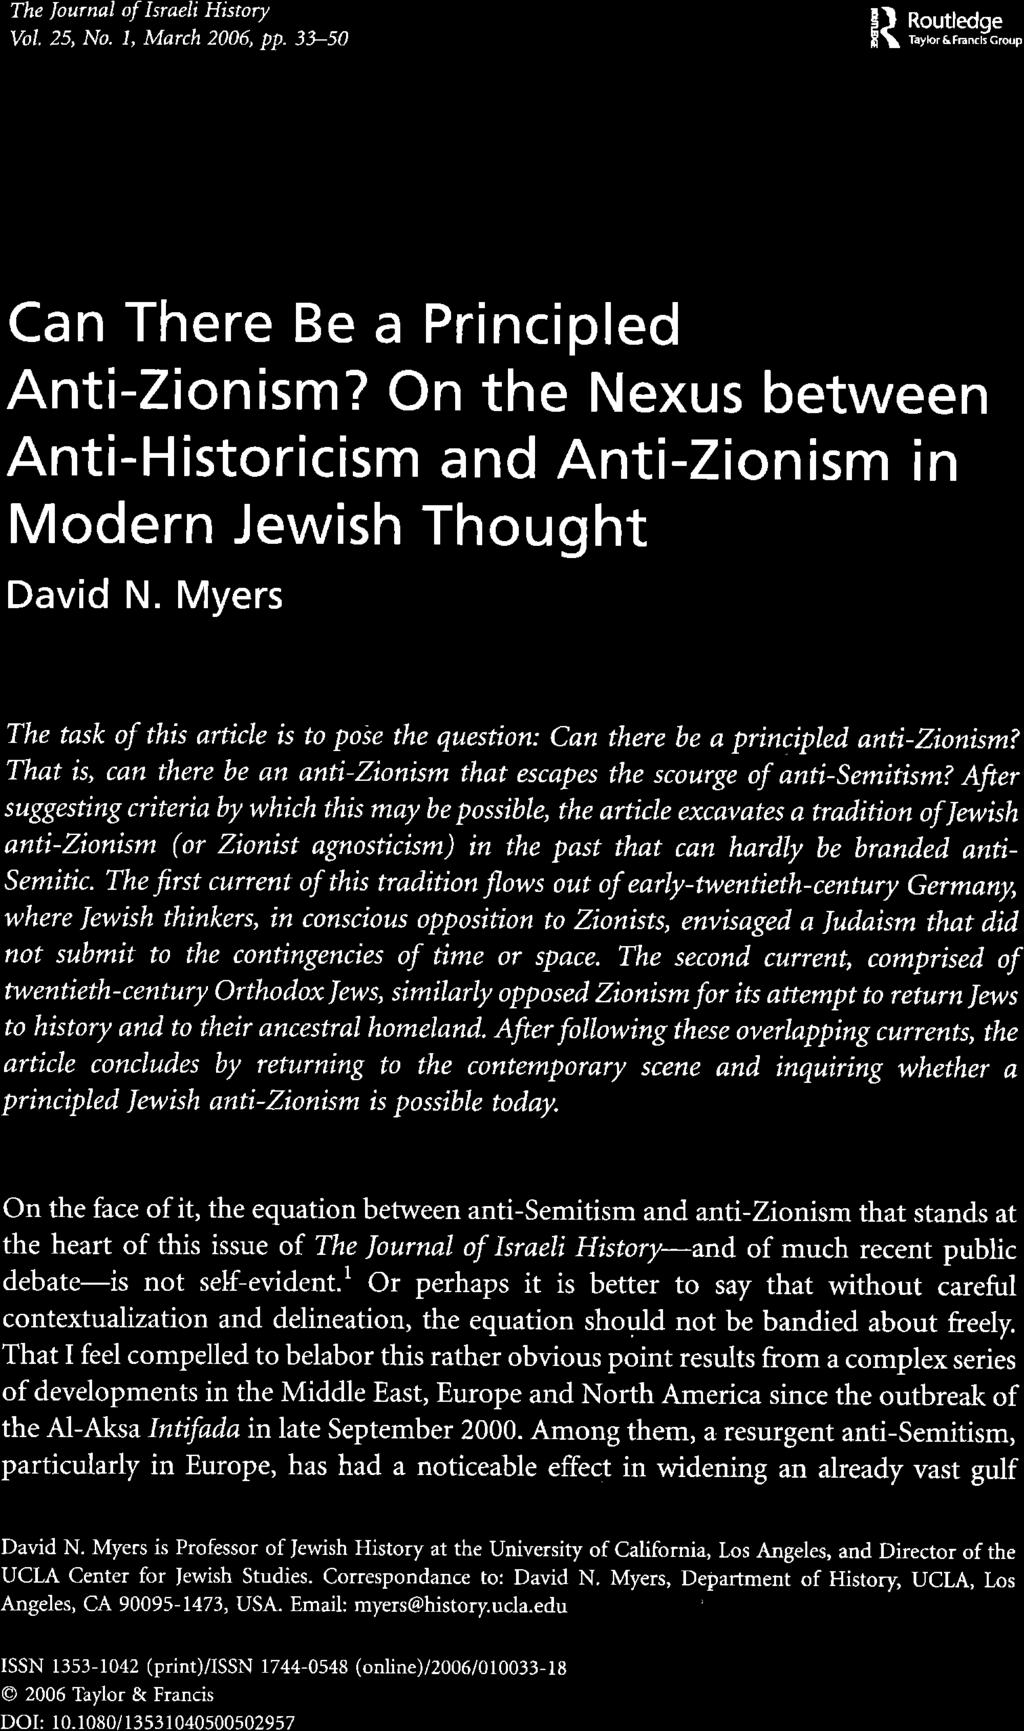 Historicism, the Holocaust, and Zionism: Critical Studies in  Modern Jewish History and Thought